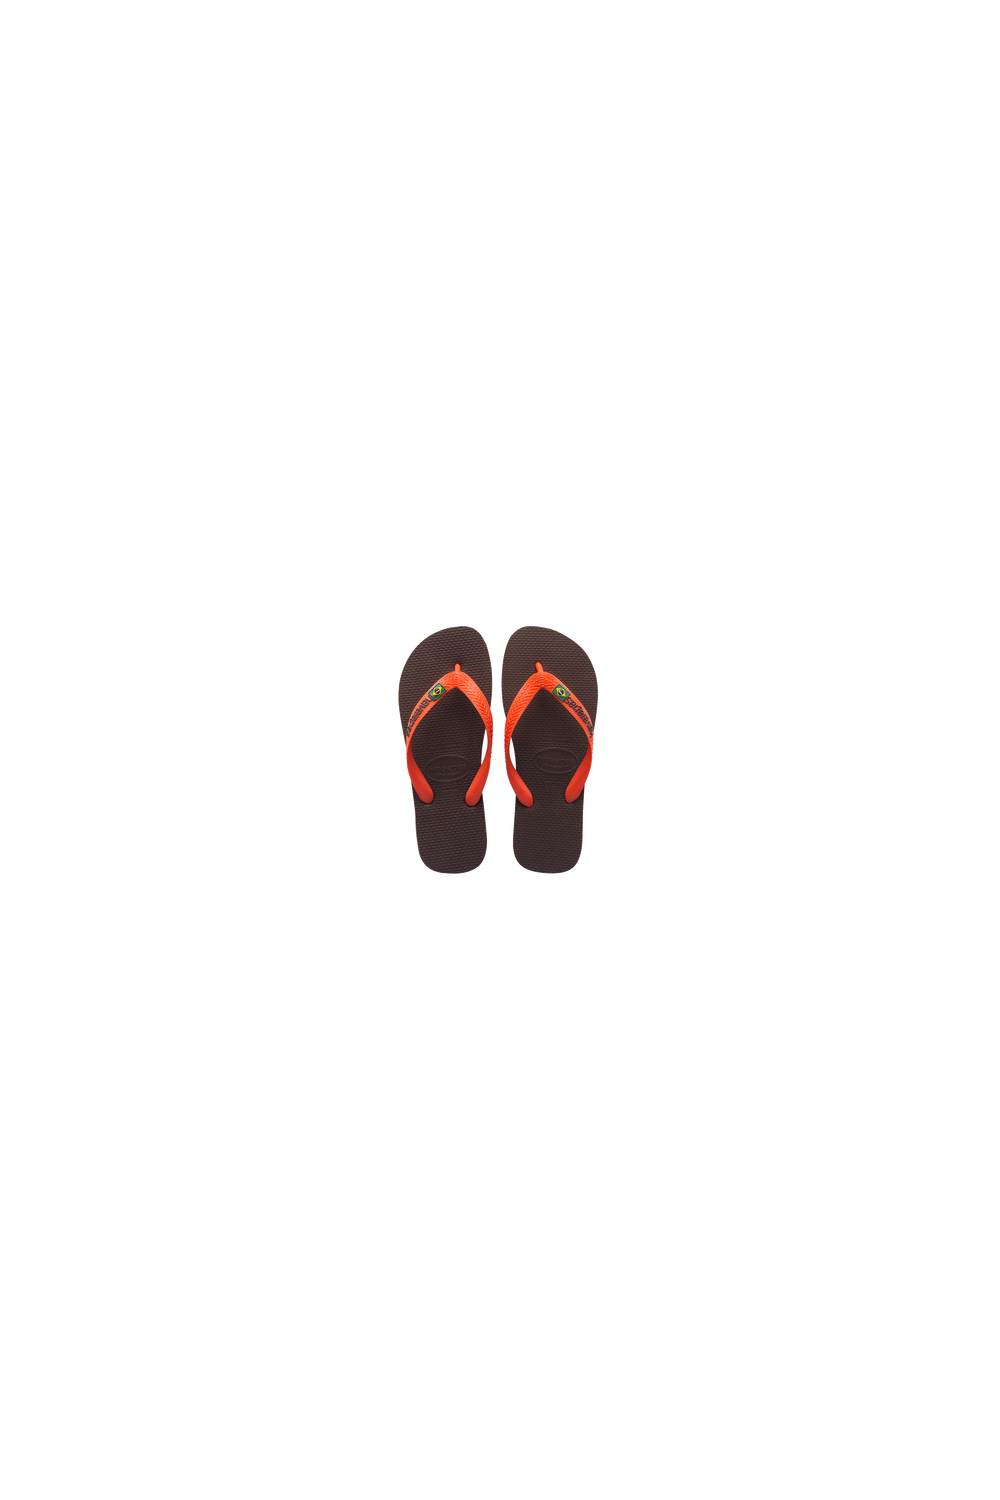 a7d16cb5bc79 Havaianas Brasil Logo Flip Flops (Dark Brown Orange) - Footwear from ...